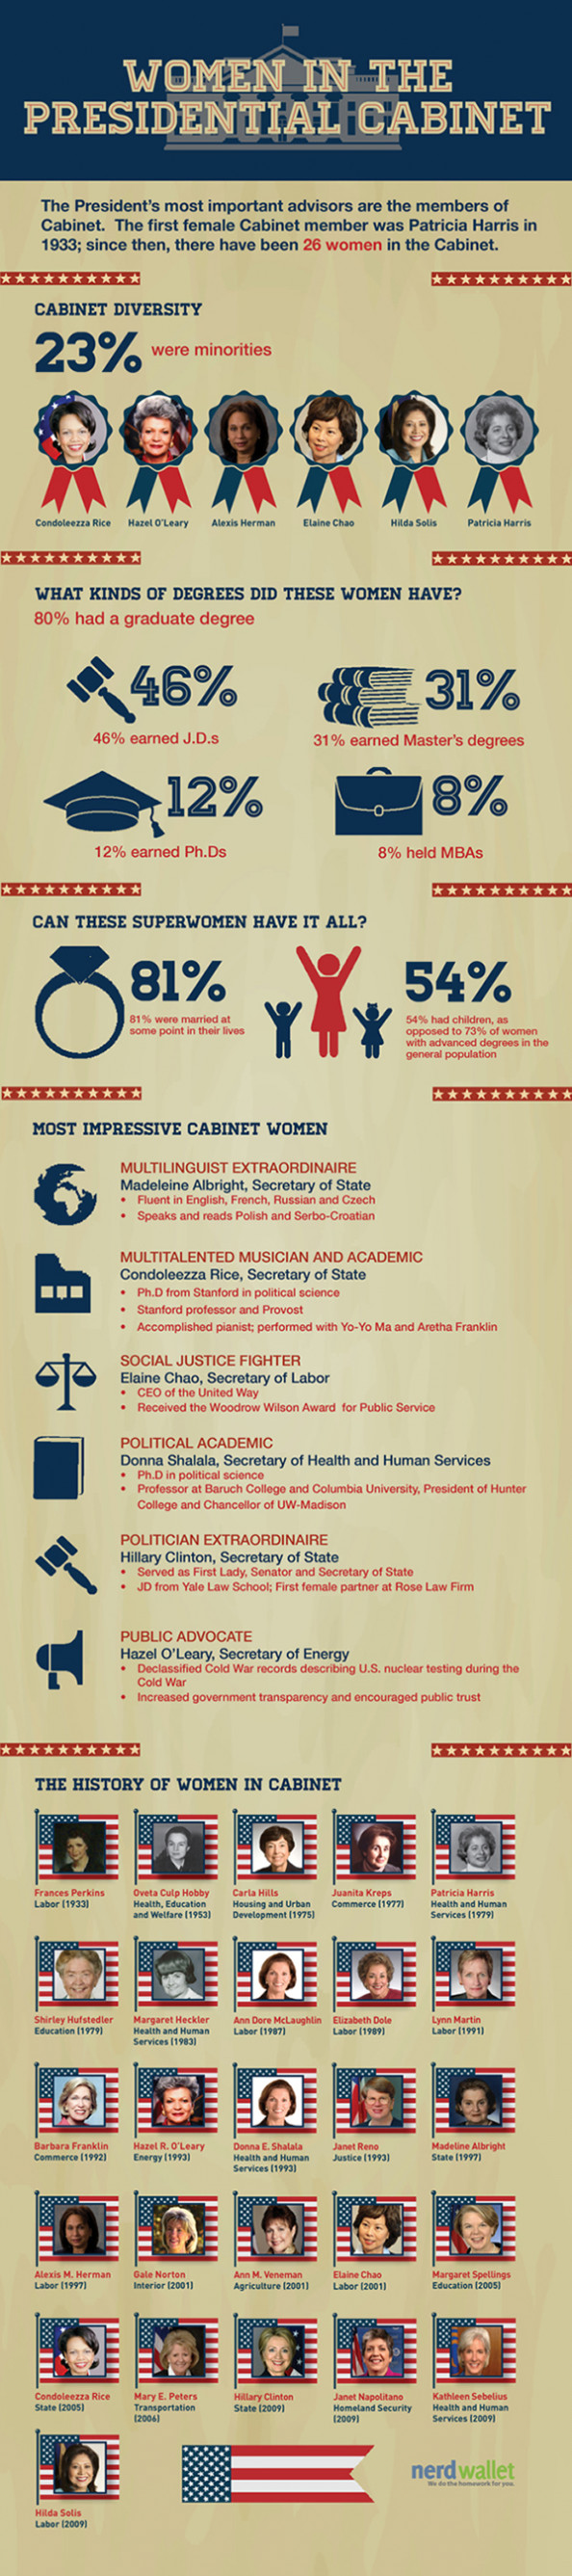 Women in the Presidential Cabinet Infographic